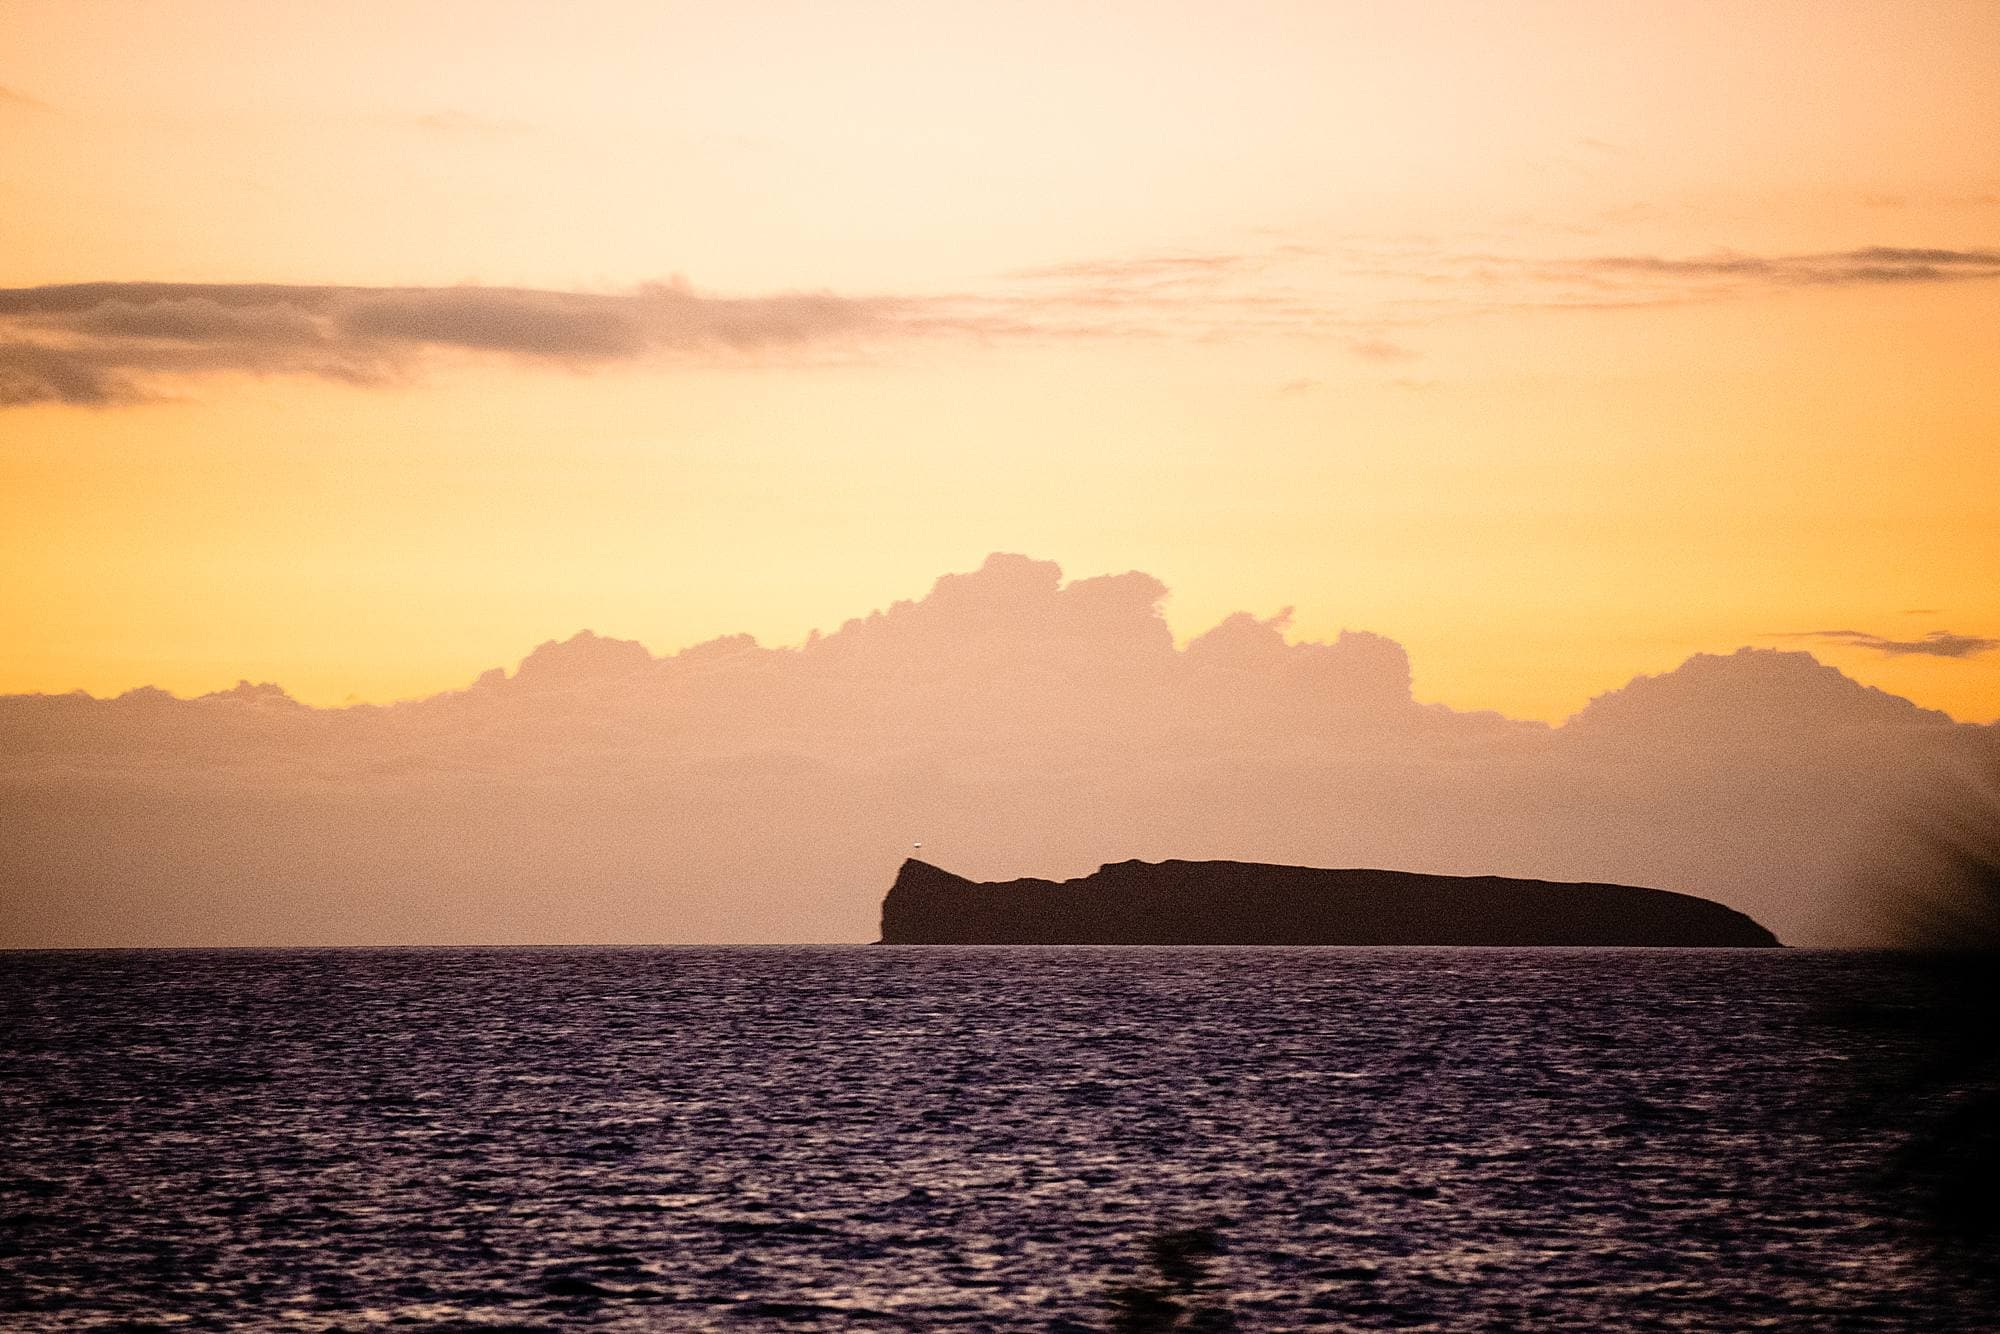 molokini sunset views from ponomakena sanctuary